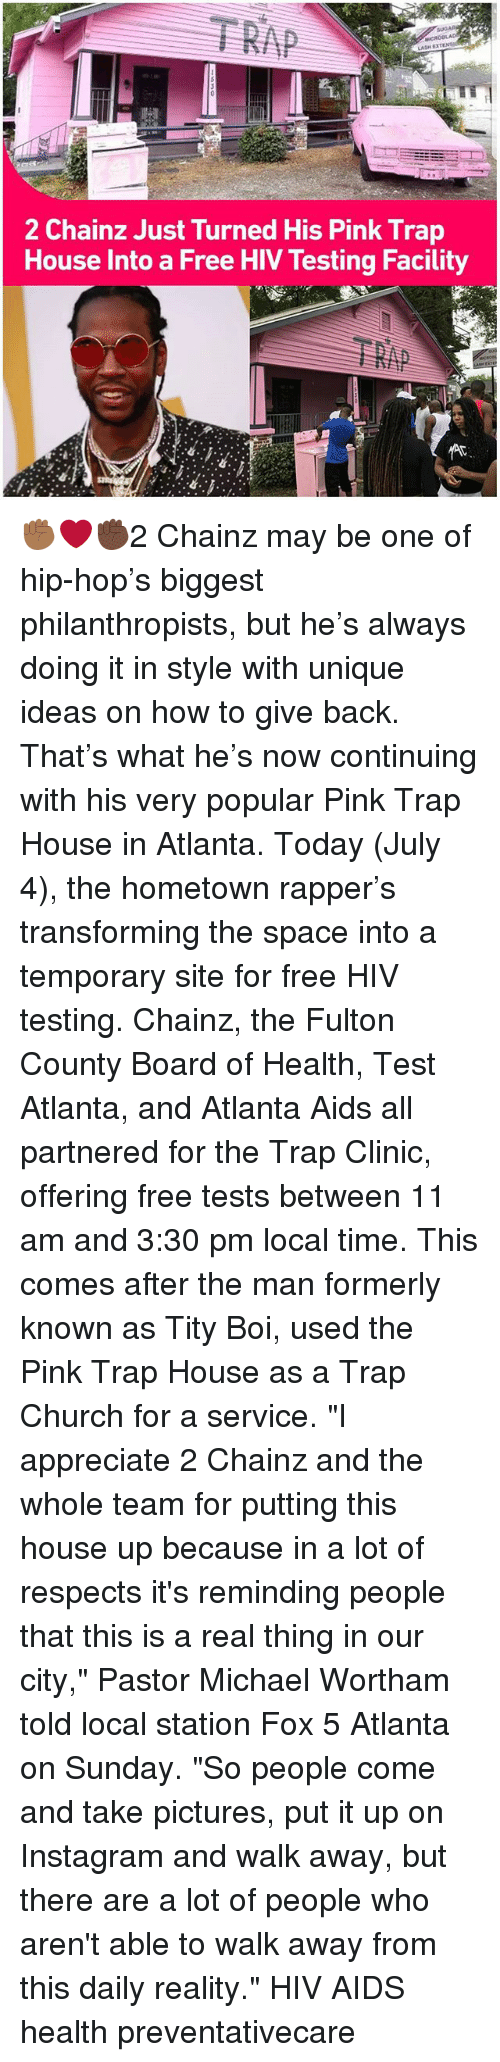 "Tity: 2 Chainz Just Turned His Pink Trap  House Into a Free HIV Testing Facility ✊🏾❤✊🏿2 Chainz may be one of hip-hop's biggest philanthropists, but he's always doing it in style with unique ideas on how to give back. That's what he's now continuing with his very popular Pink Trap House in Atlanta. Today (July 4), the hometown rapper's transforming the space into a temporary site for free HIV testing. Chainz, the Fulton County Board of Health, Test Atlanta, and Atlanta Aids all partnered for the Trap Clinic, offering free tests between 11 am and 3:30 pm local time. This comes after the man formerly known as Tity Boi, used the Pink Trap House as a Trap Church for a service. ""I appreciate 2 Chainz and the whole team for putting this house up because in a lot of respects it's reminding people that this is a real thing in our city,"" Pastor Michael Wortham told local station Fox 5 Atlanta on Sunday. ""So people come and take pictures, put it up on Instagram and walk away, but there are a lot of people who aren't able to walk away from this daily reality."" HIV AIDS health preventativecare"